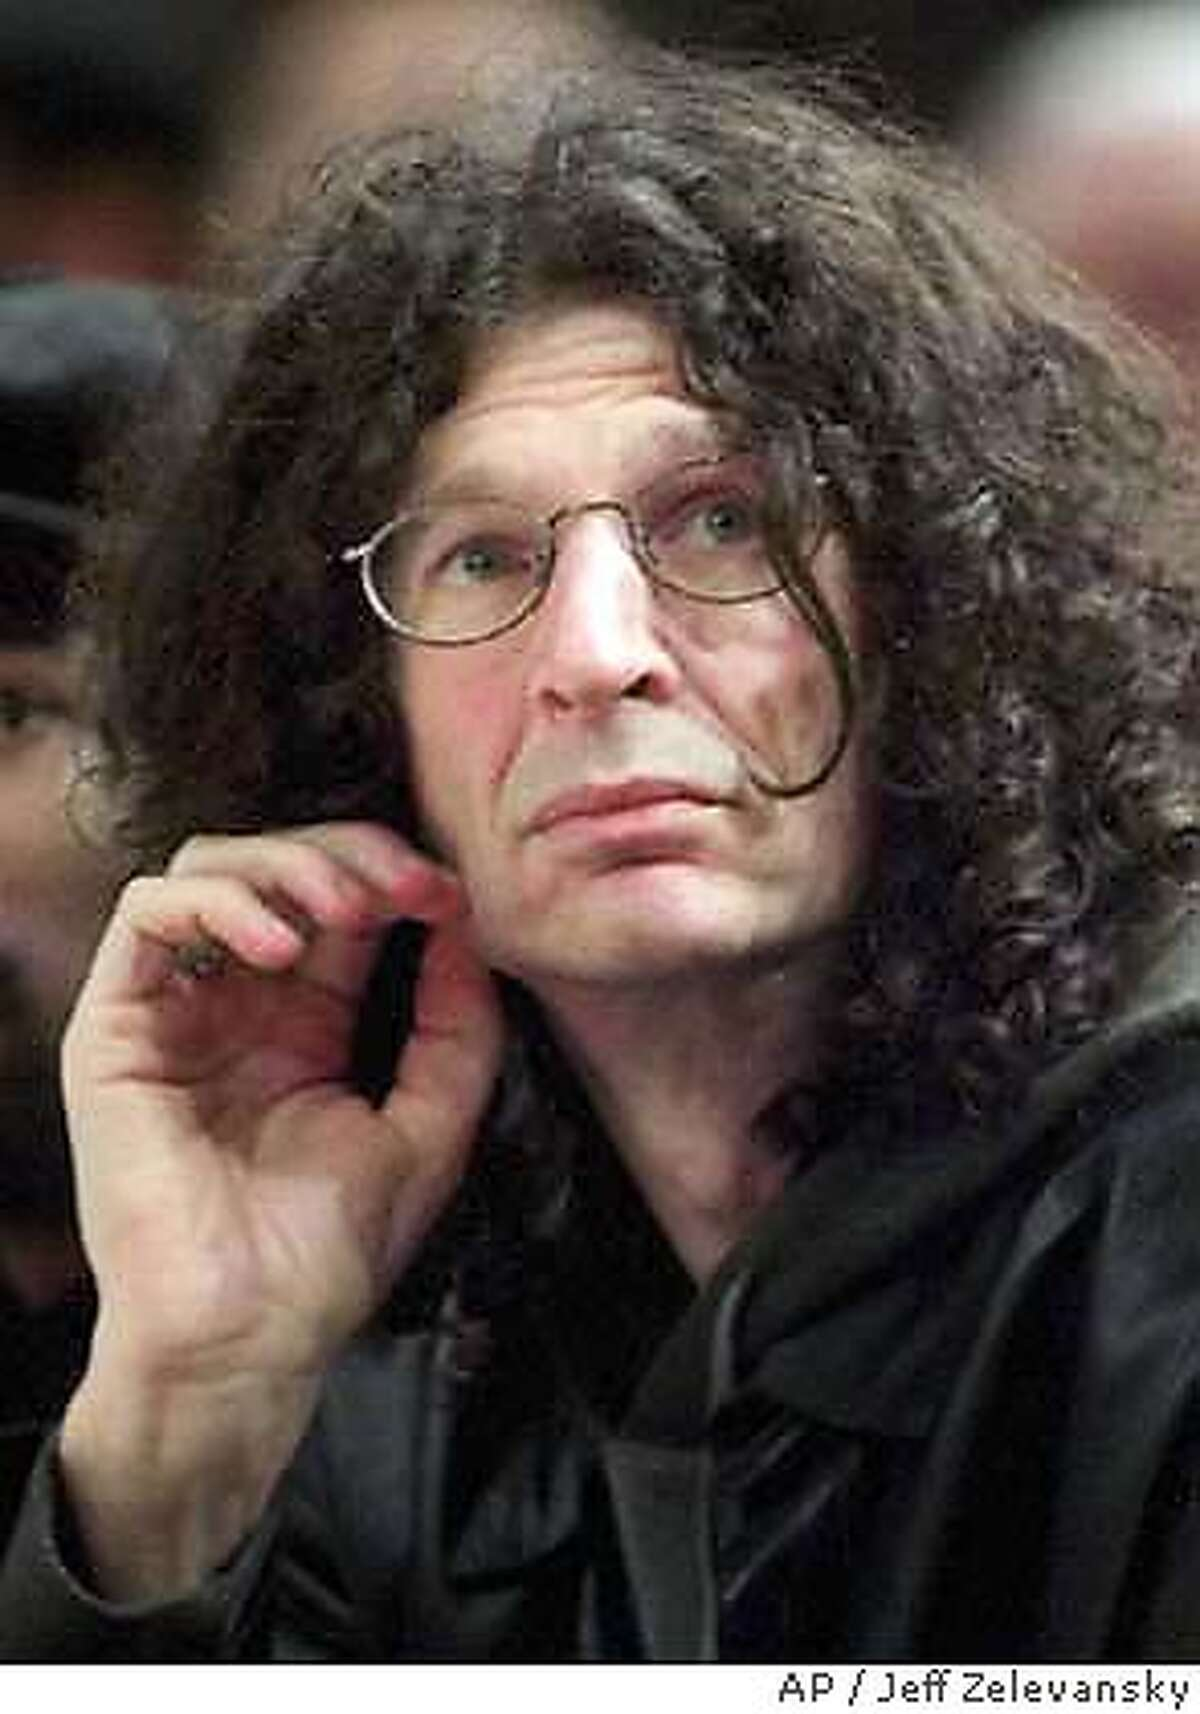 ** FILE ** Howard Stern attends a New York Knicks game at Madison Square Garden in New York, Saturday, Dec. 8, 2001. The Federal Communications Commission has reached a nearly $2 million settlement with Clear Channel Communications to resolve a number of indecency complaints that include shock jock Howard Stern, (AP Photo/Jeff Zelevansky) DEC. 8, 2001 PHOTO